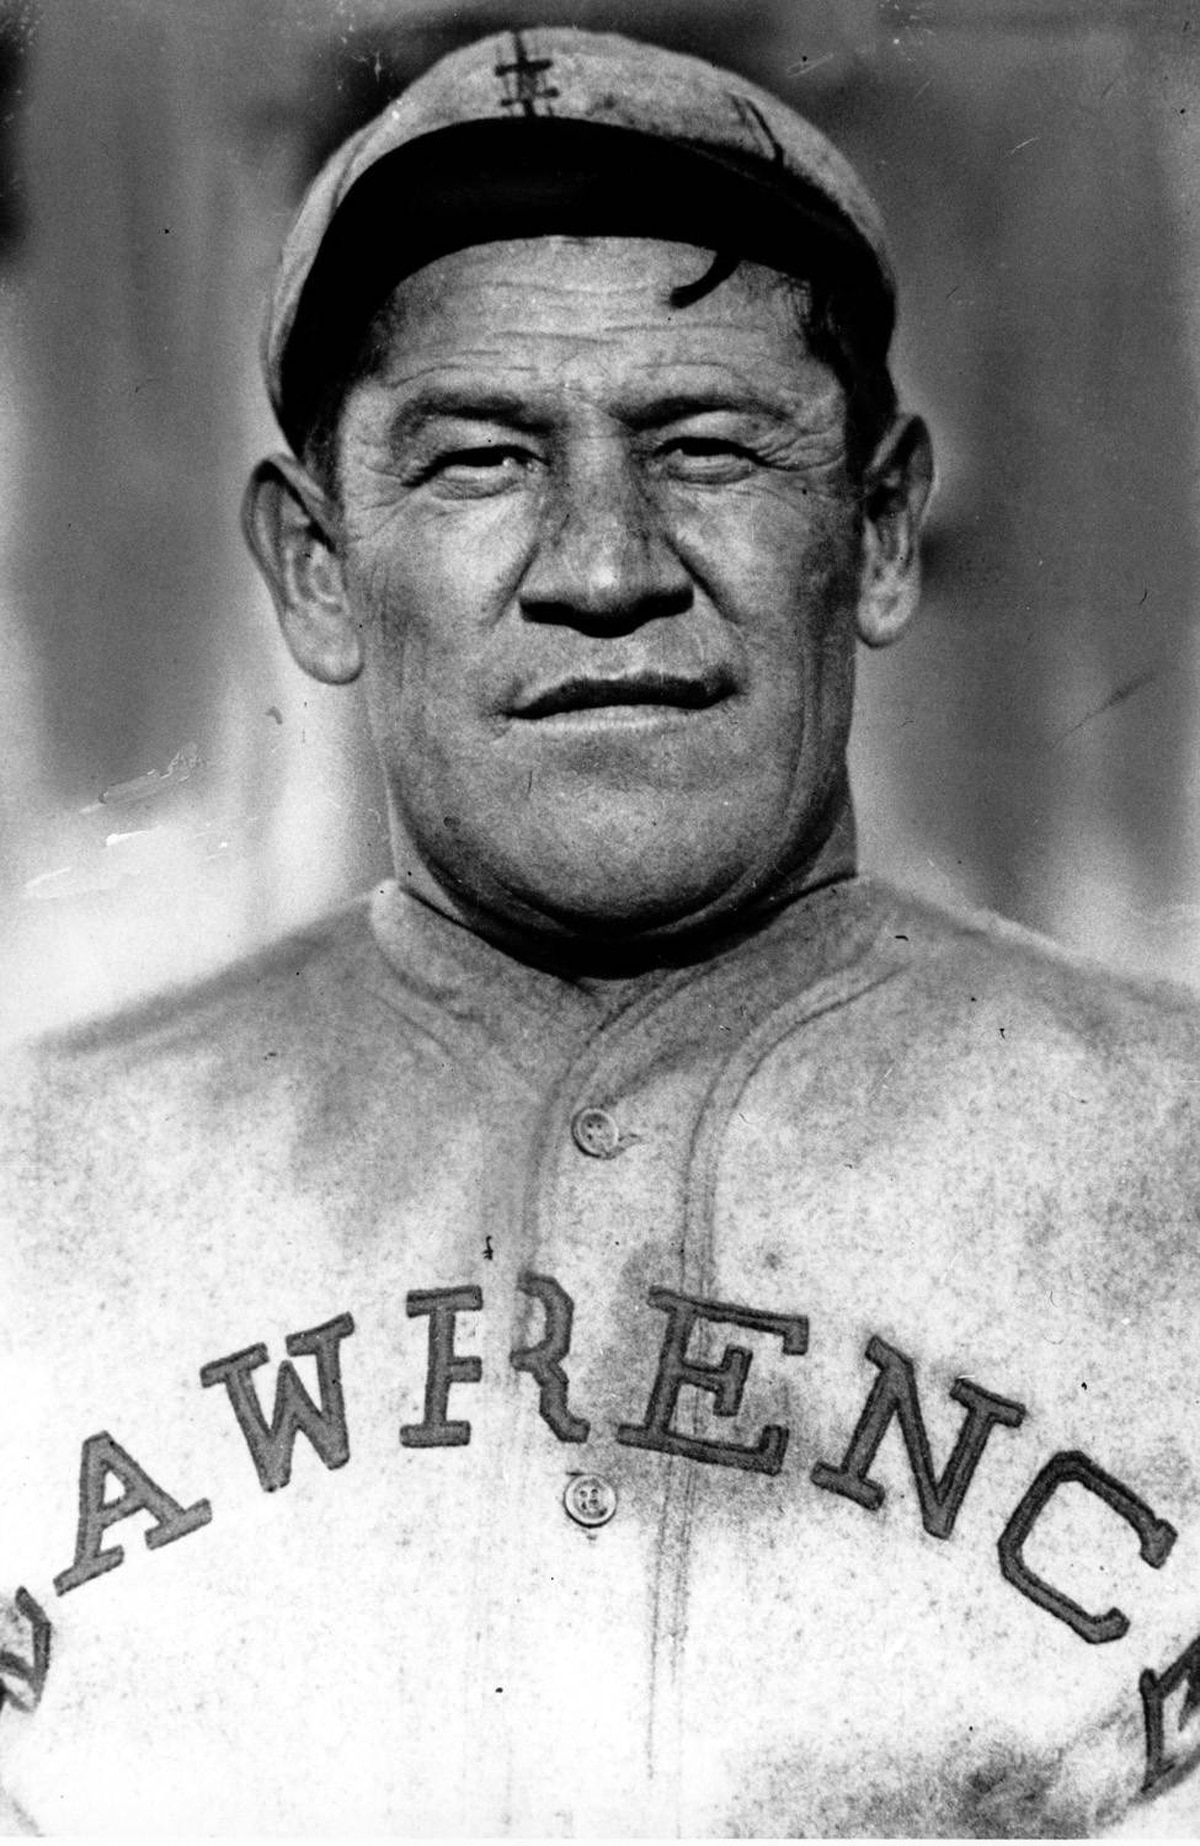 This is an undated file photo of Jim Thorpe in a baseball uniform. He was a student at Haskell Institute in Lawrence, Kan., as a young boy. Considered one of America's greatest athletes, he played professional baseball with the New York Giants, the Cincinnati Reds, and the Boston Braves. He played professional football between 1919 and 1926. A second statue of Thorpe will be unveiled at his burial site in Jim Thorpe, Pa., on May 21, 2011.